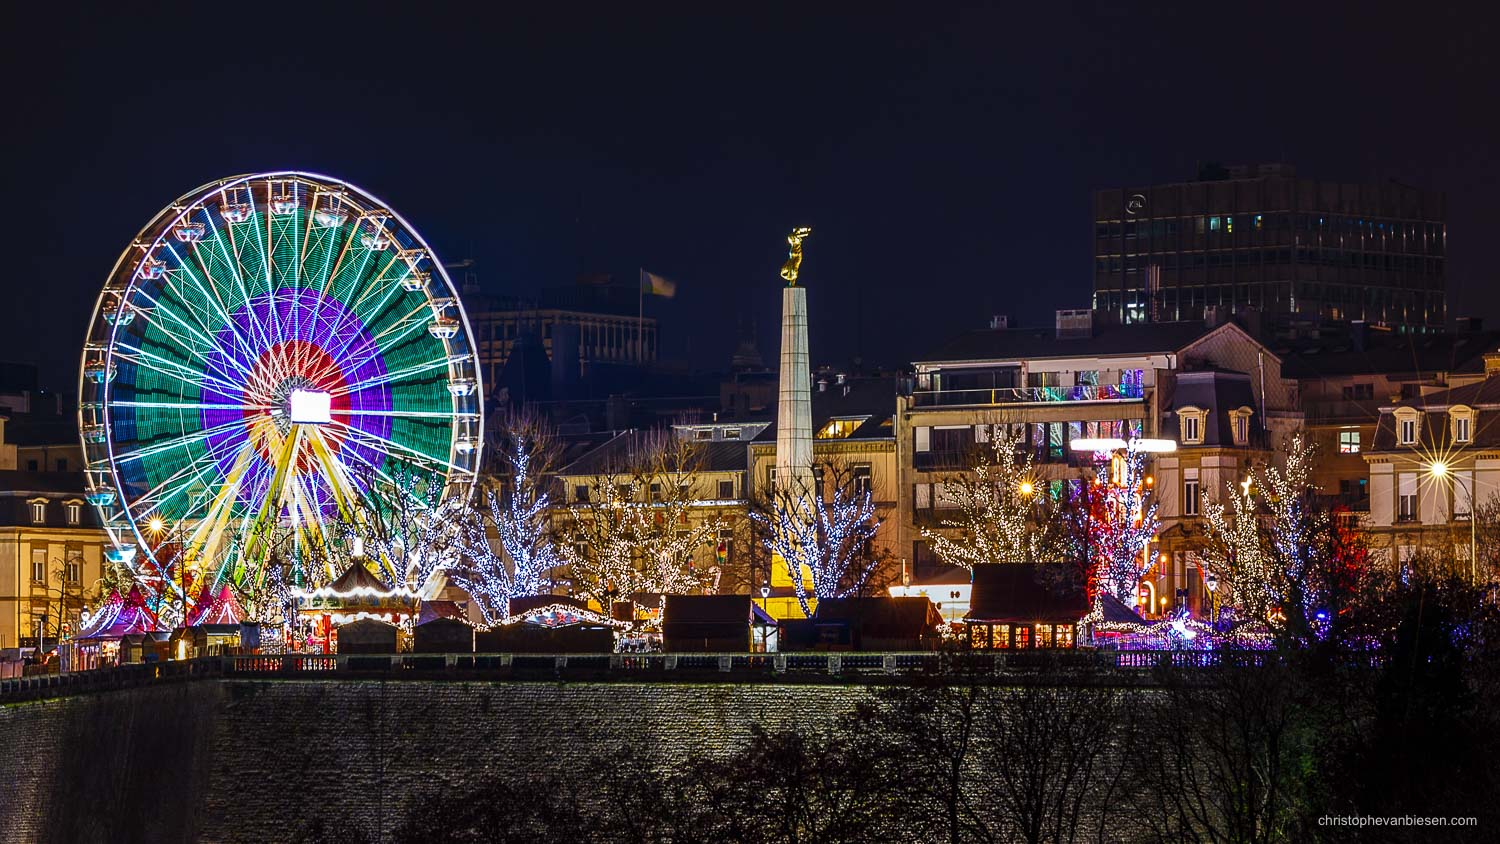 Christmas in Luxembourg - Luxembourg City's Christmas market on place de la Constitution seen from afar - Psychedelic Christmas